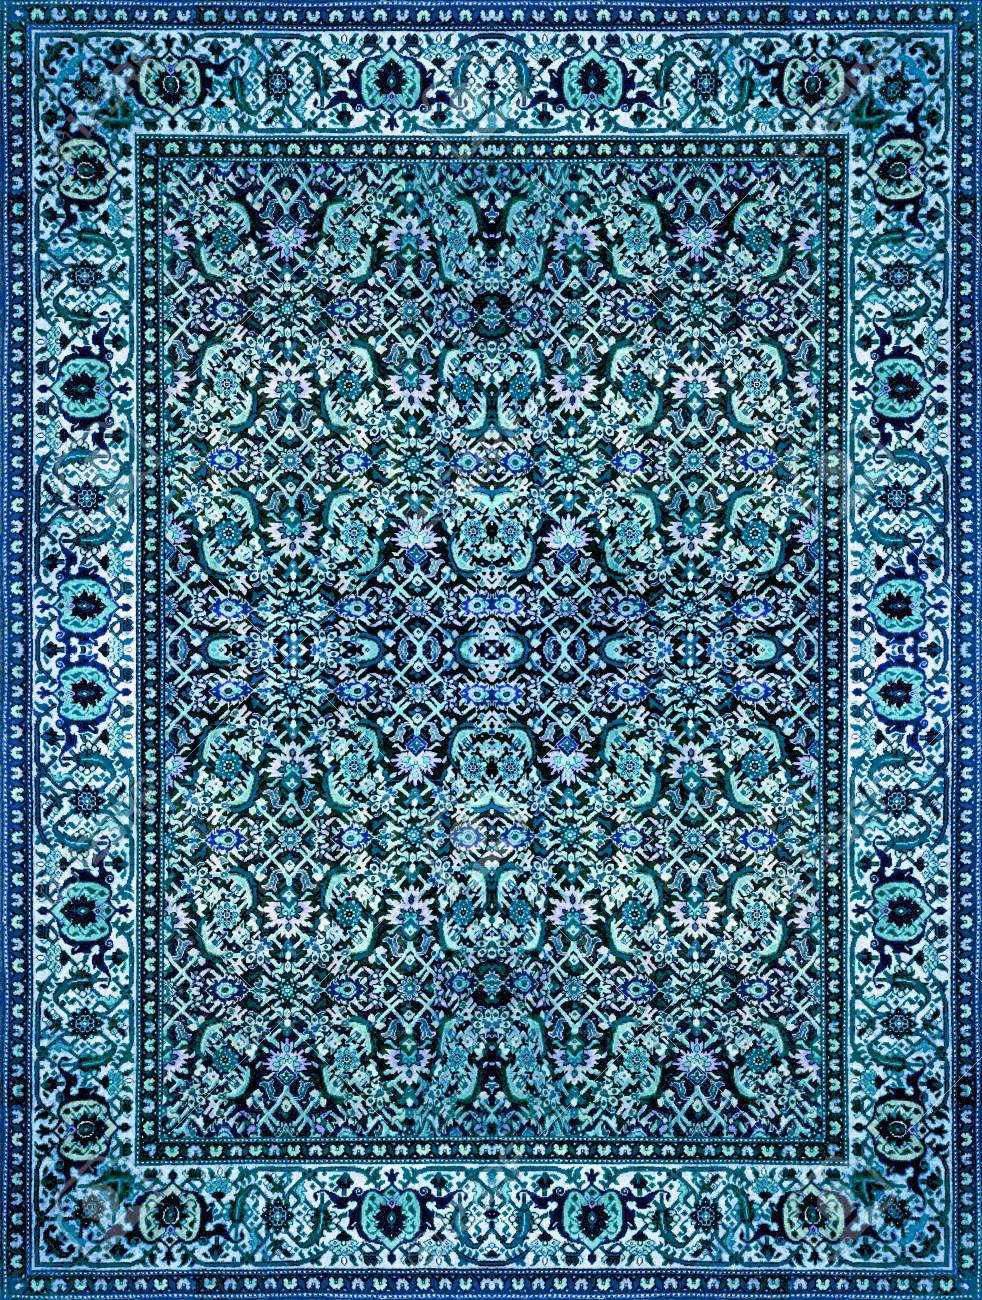 Blue Carpet Texture : carpet, texture, Persian, Carpet, Texture,, Abstract, Ornament., Round, Mandala, Pattern,.., Stock, Photo,, Picture, Royalty, Image., Image, 72112144.